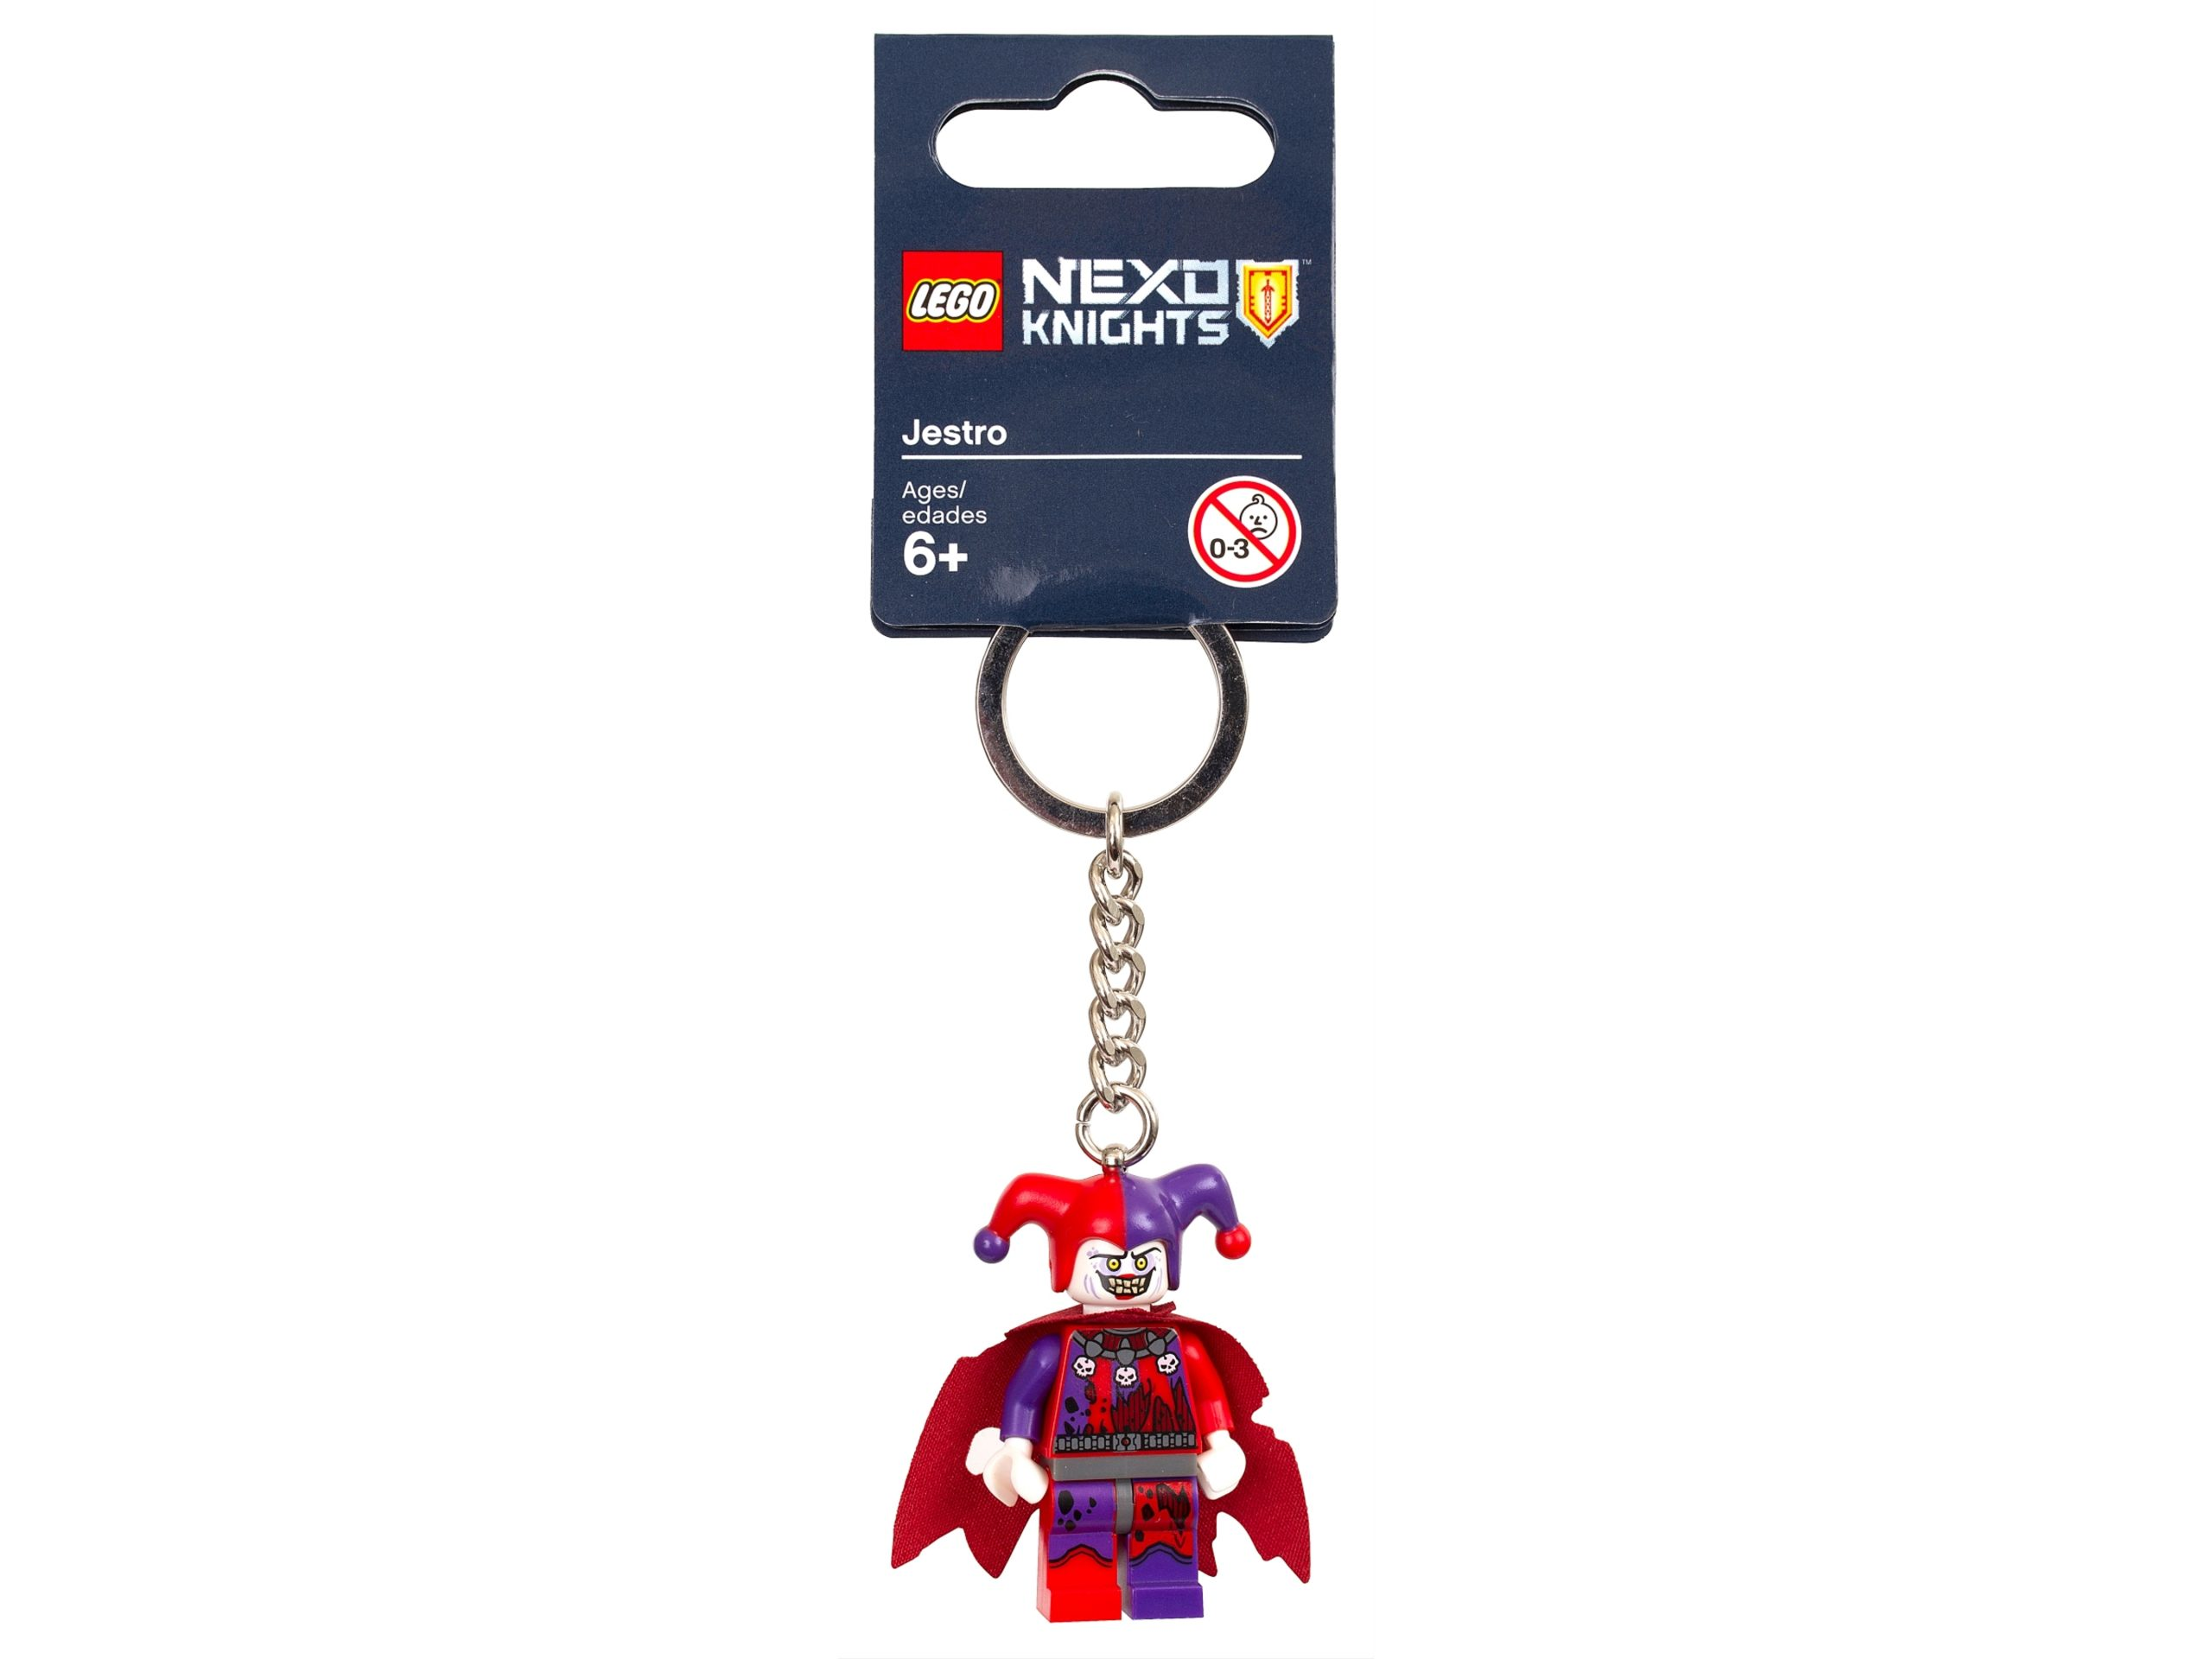 lego 853525 nexo knights jestro key chain scaled